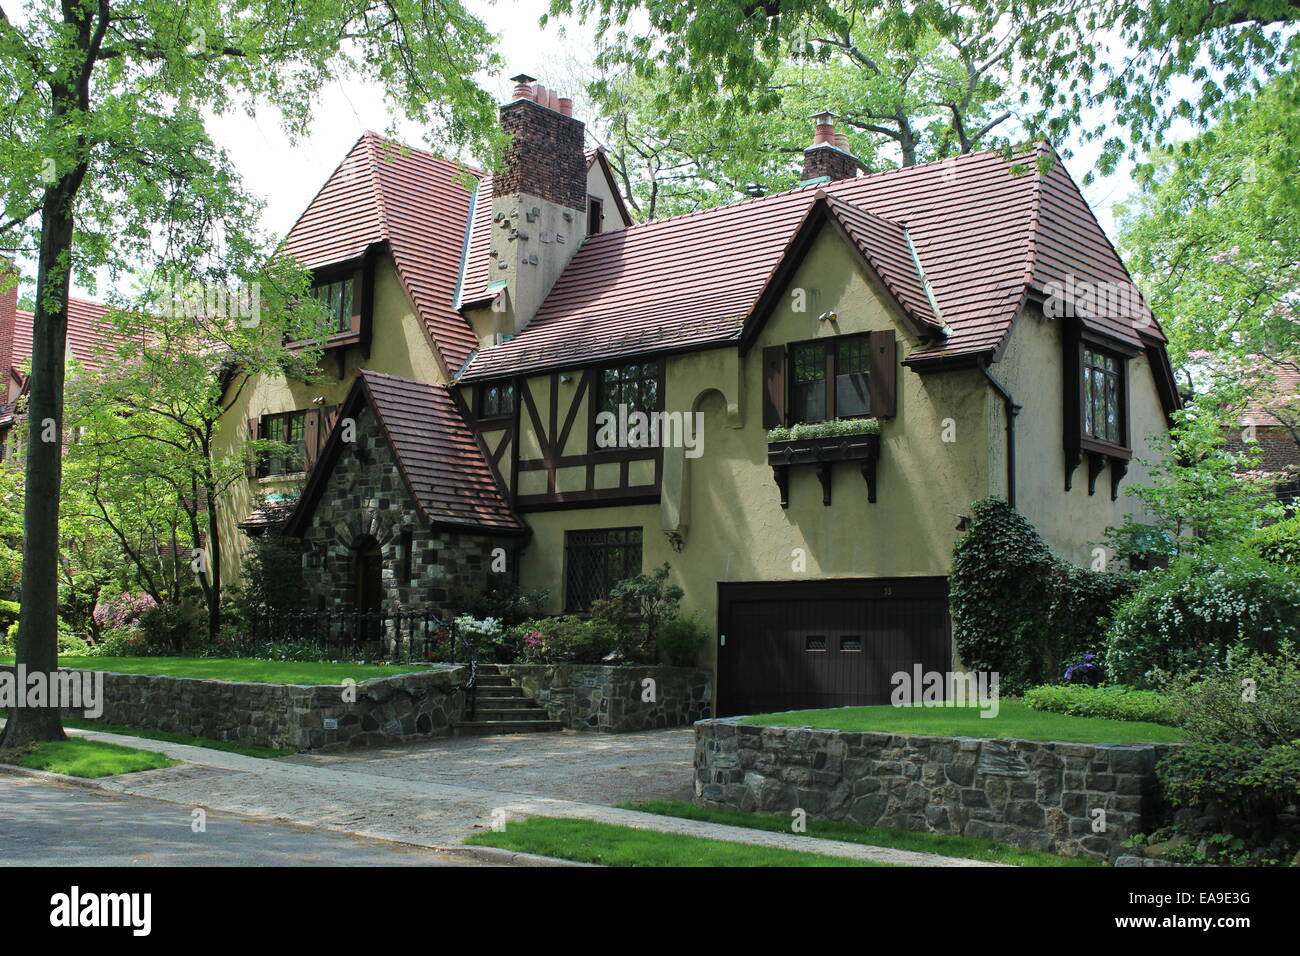 Tudor Revival House, Forest Hills Gardens, Queens, New York   Stock Image Nice Look